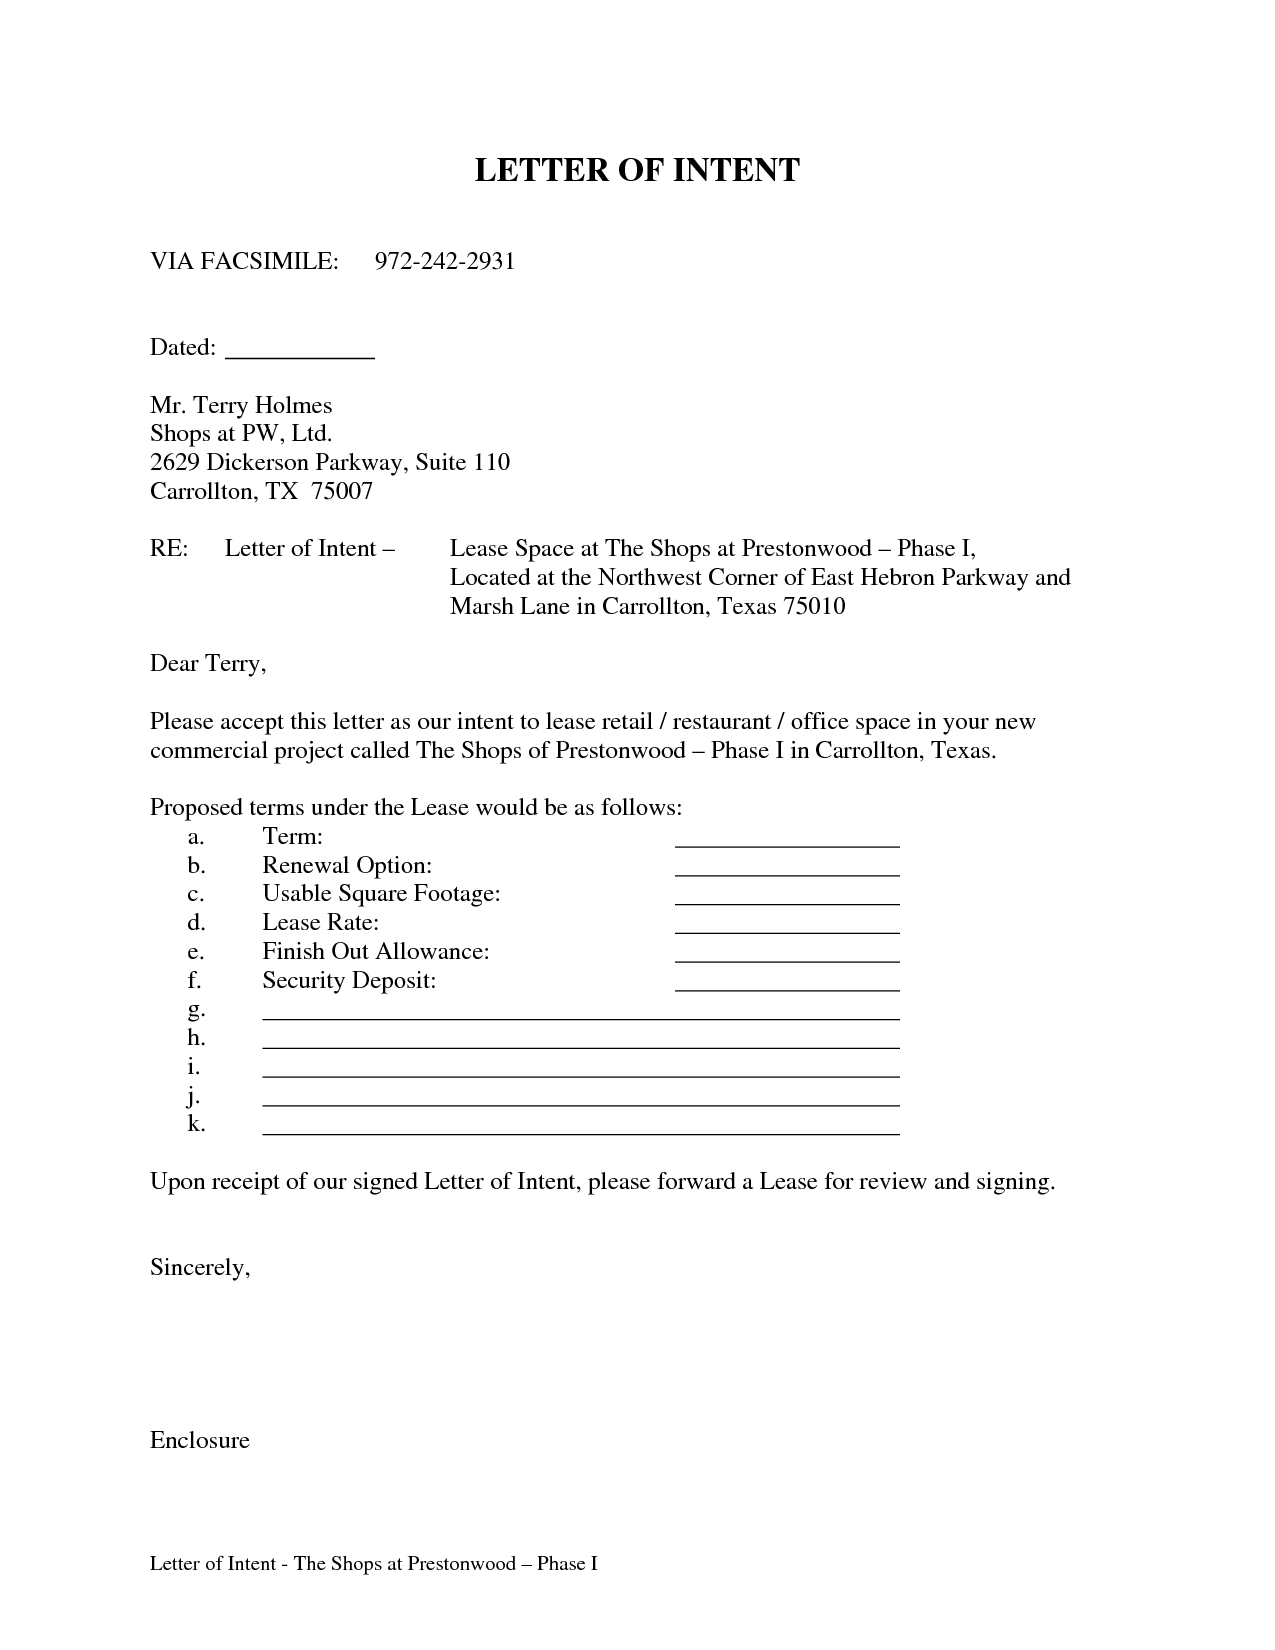 Letter Of Intent to Lease Commercial Space Template - Letter Intent for Mercial Lease Sample Real Estate Purchase